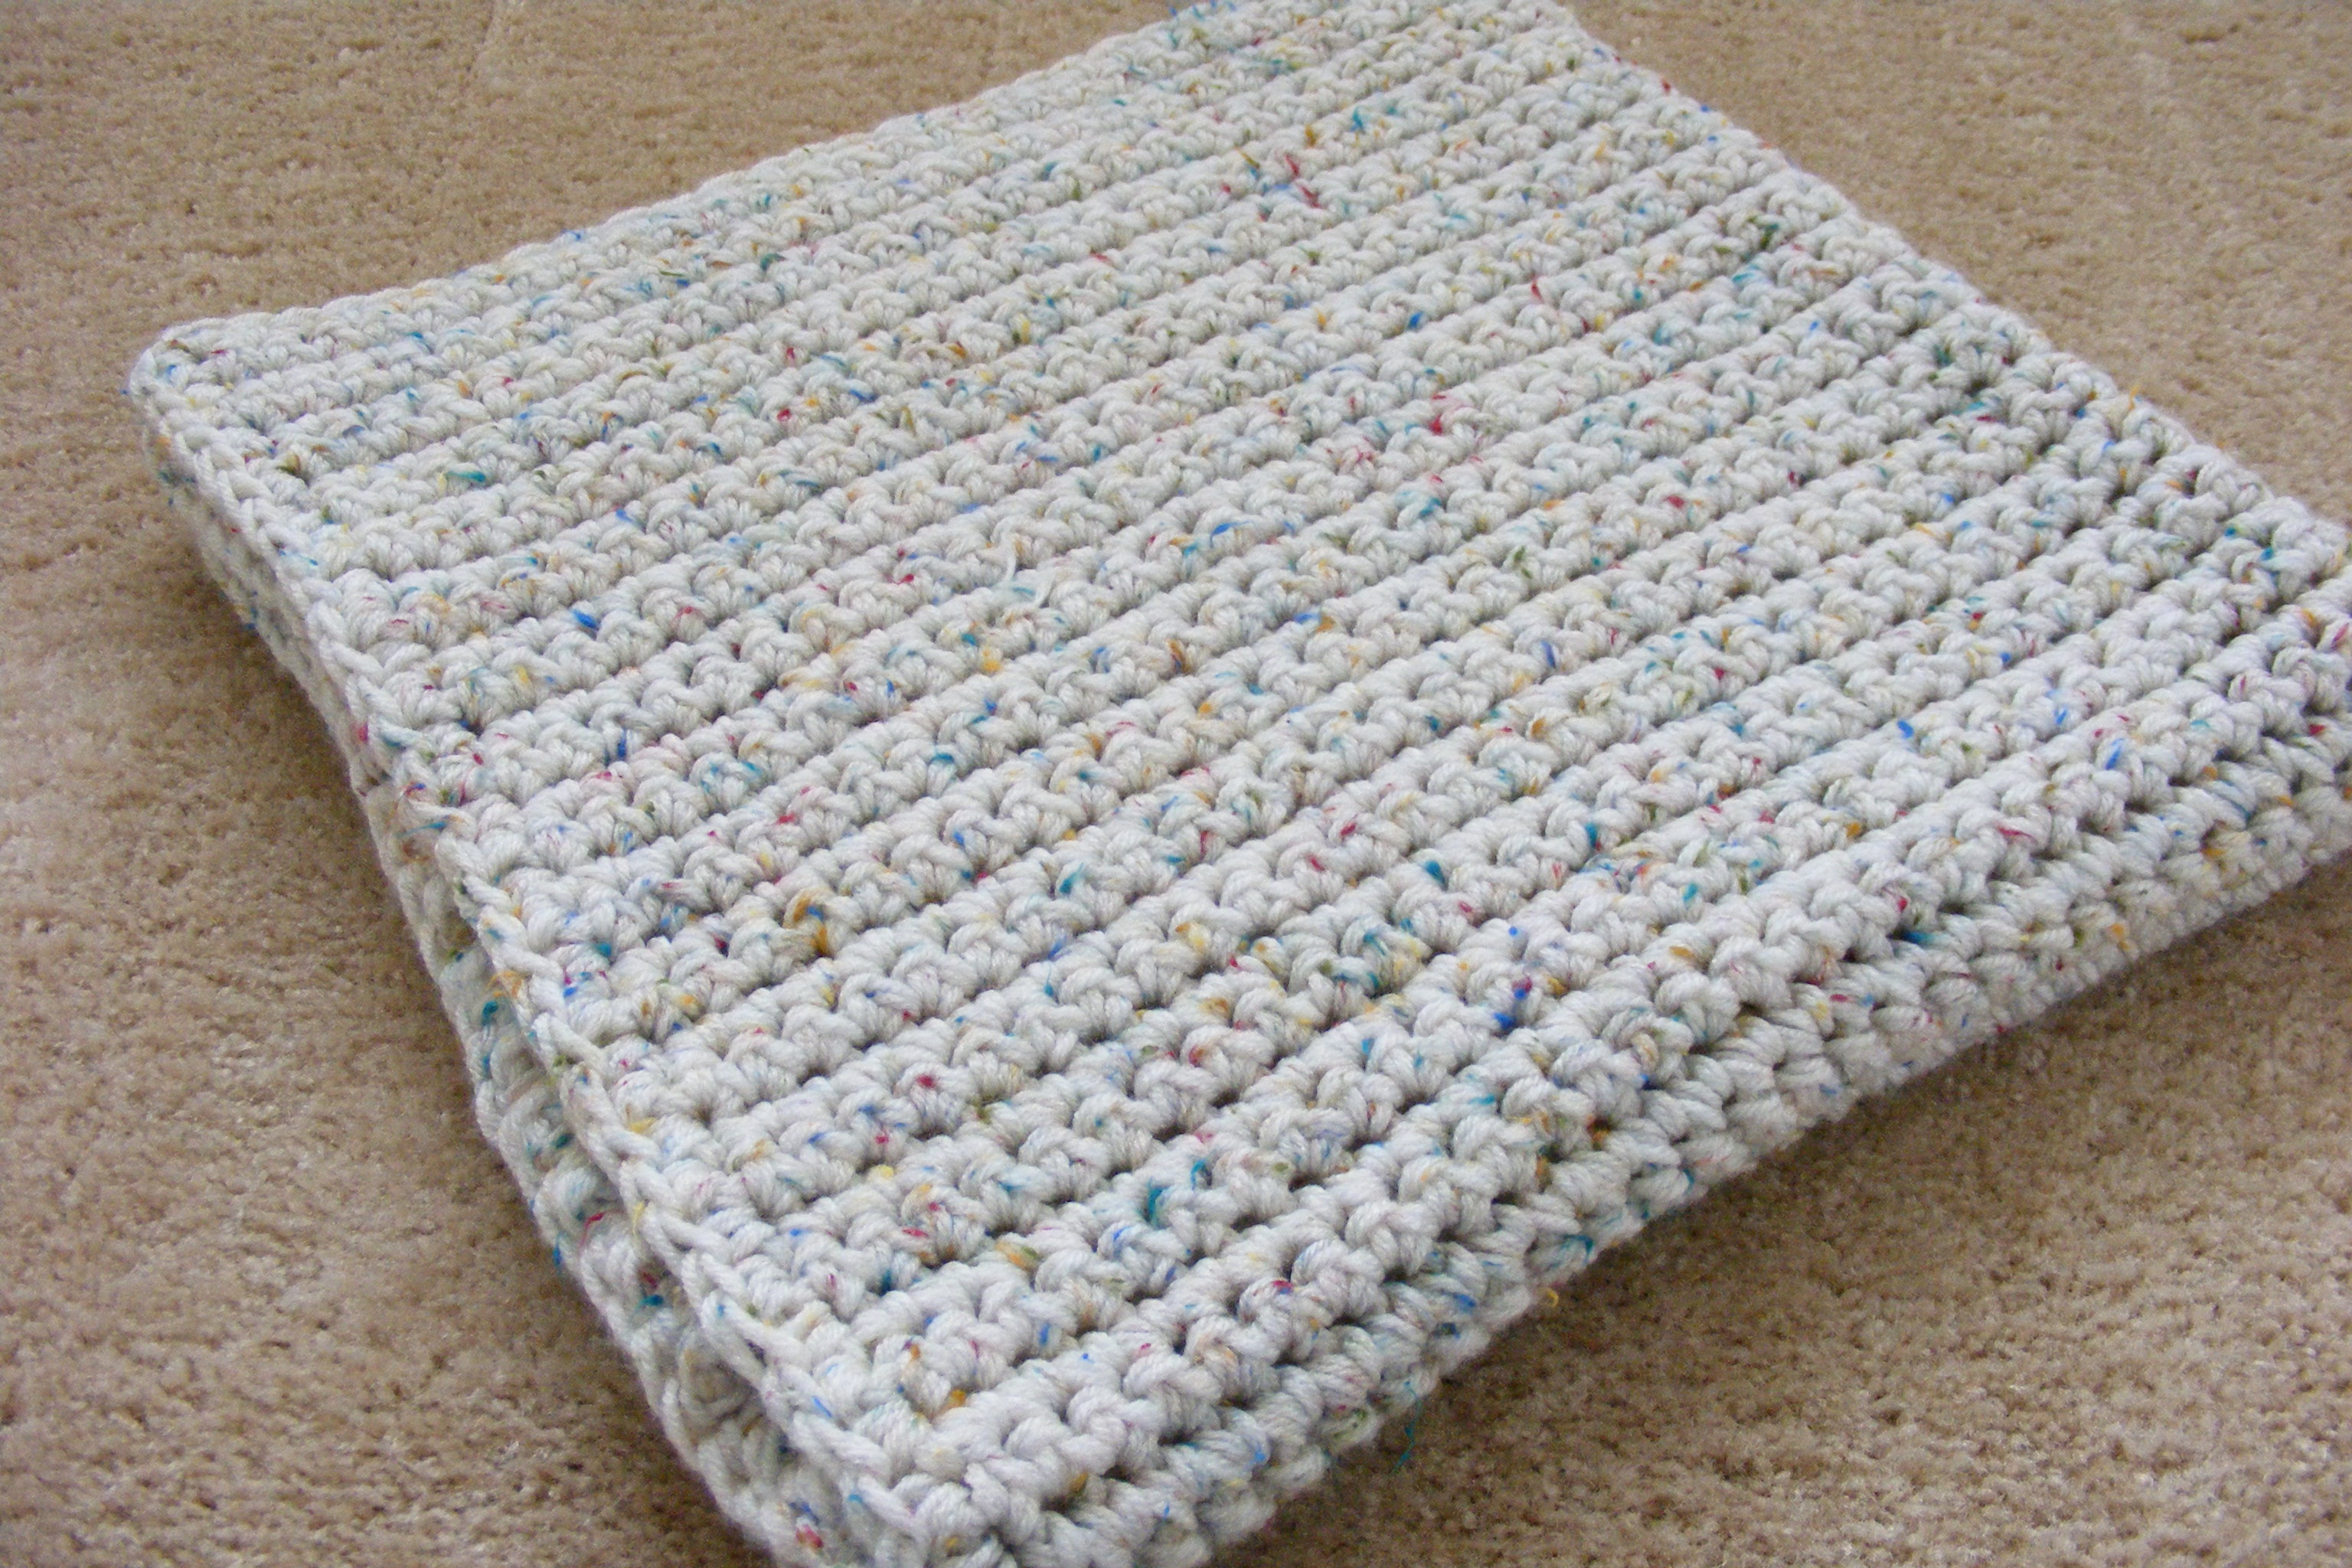 Crocheting Baby Blanket : Single Crochet Baby Blanket GretchKals Yarny Adventures